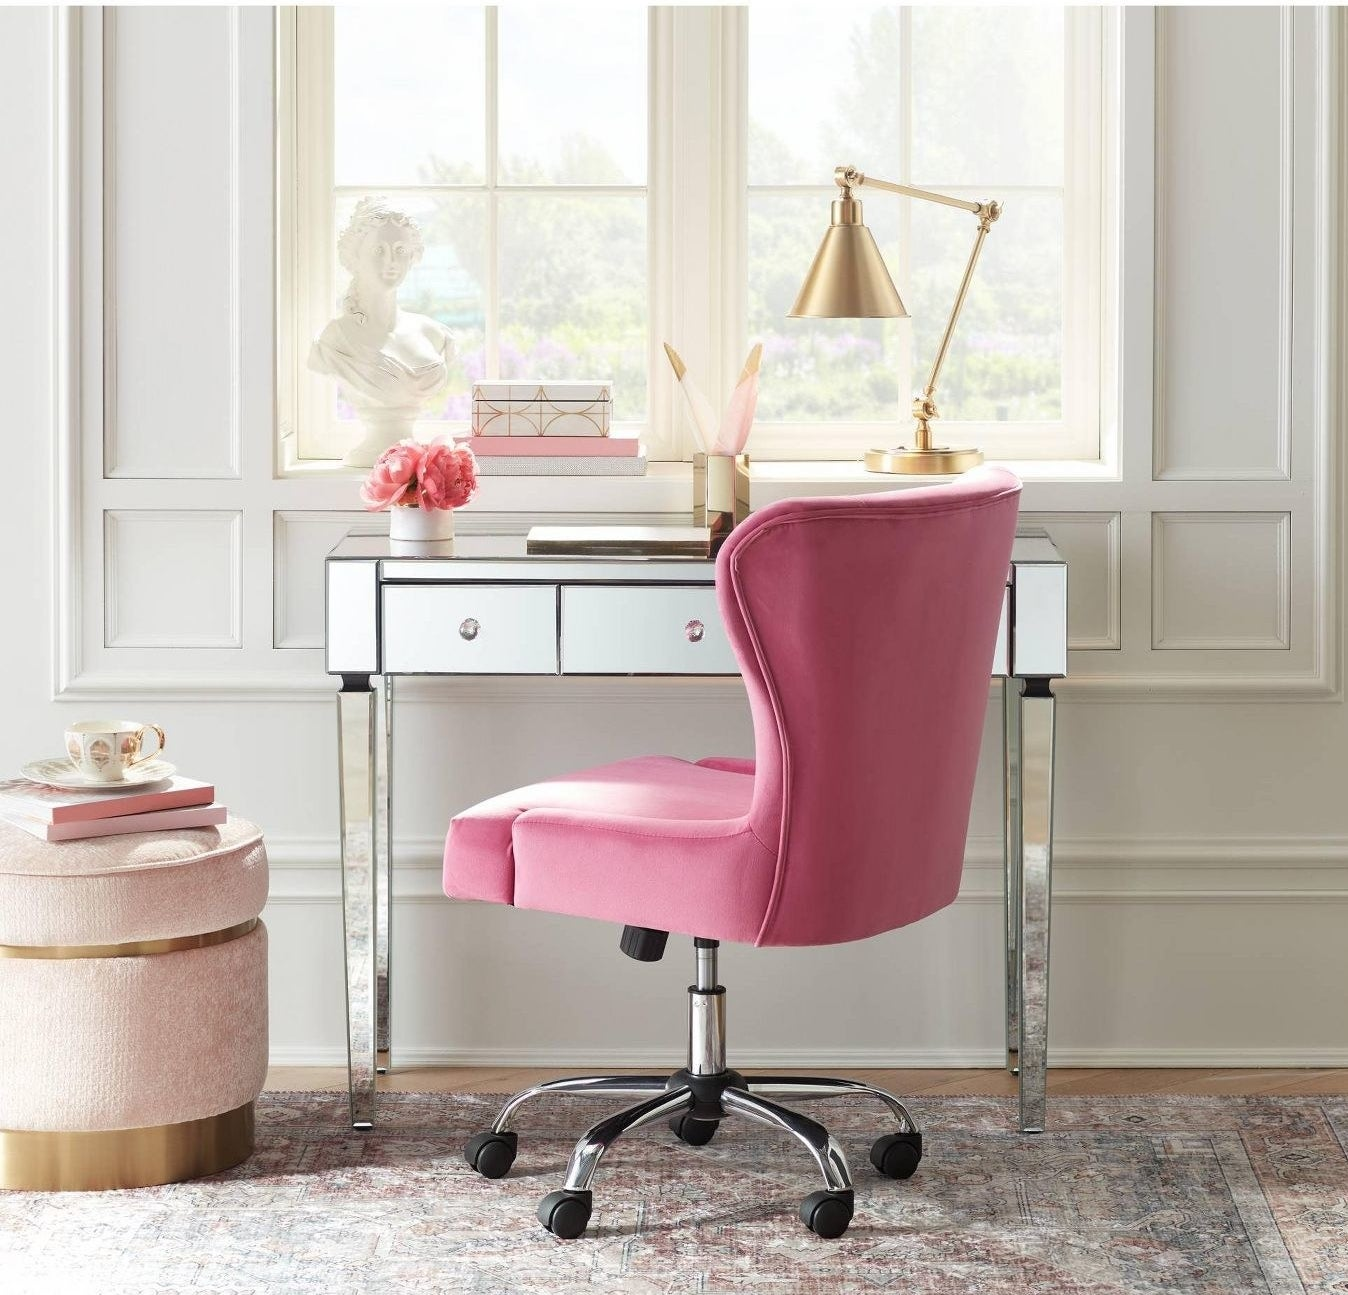 a mirrored desk with a bright pink desk chair